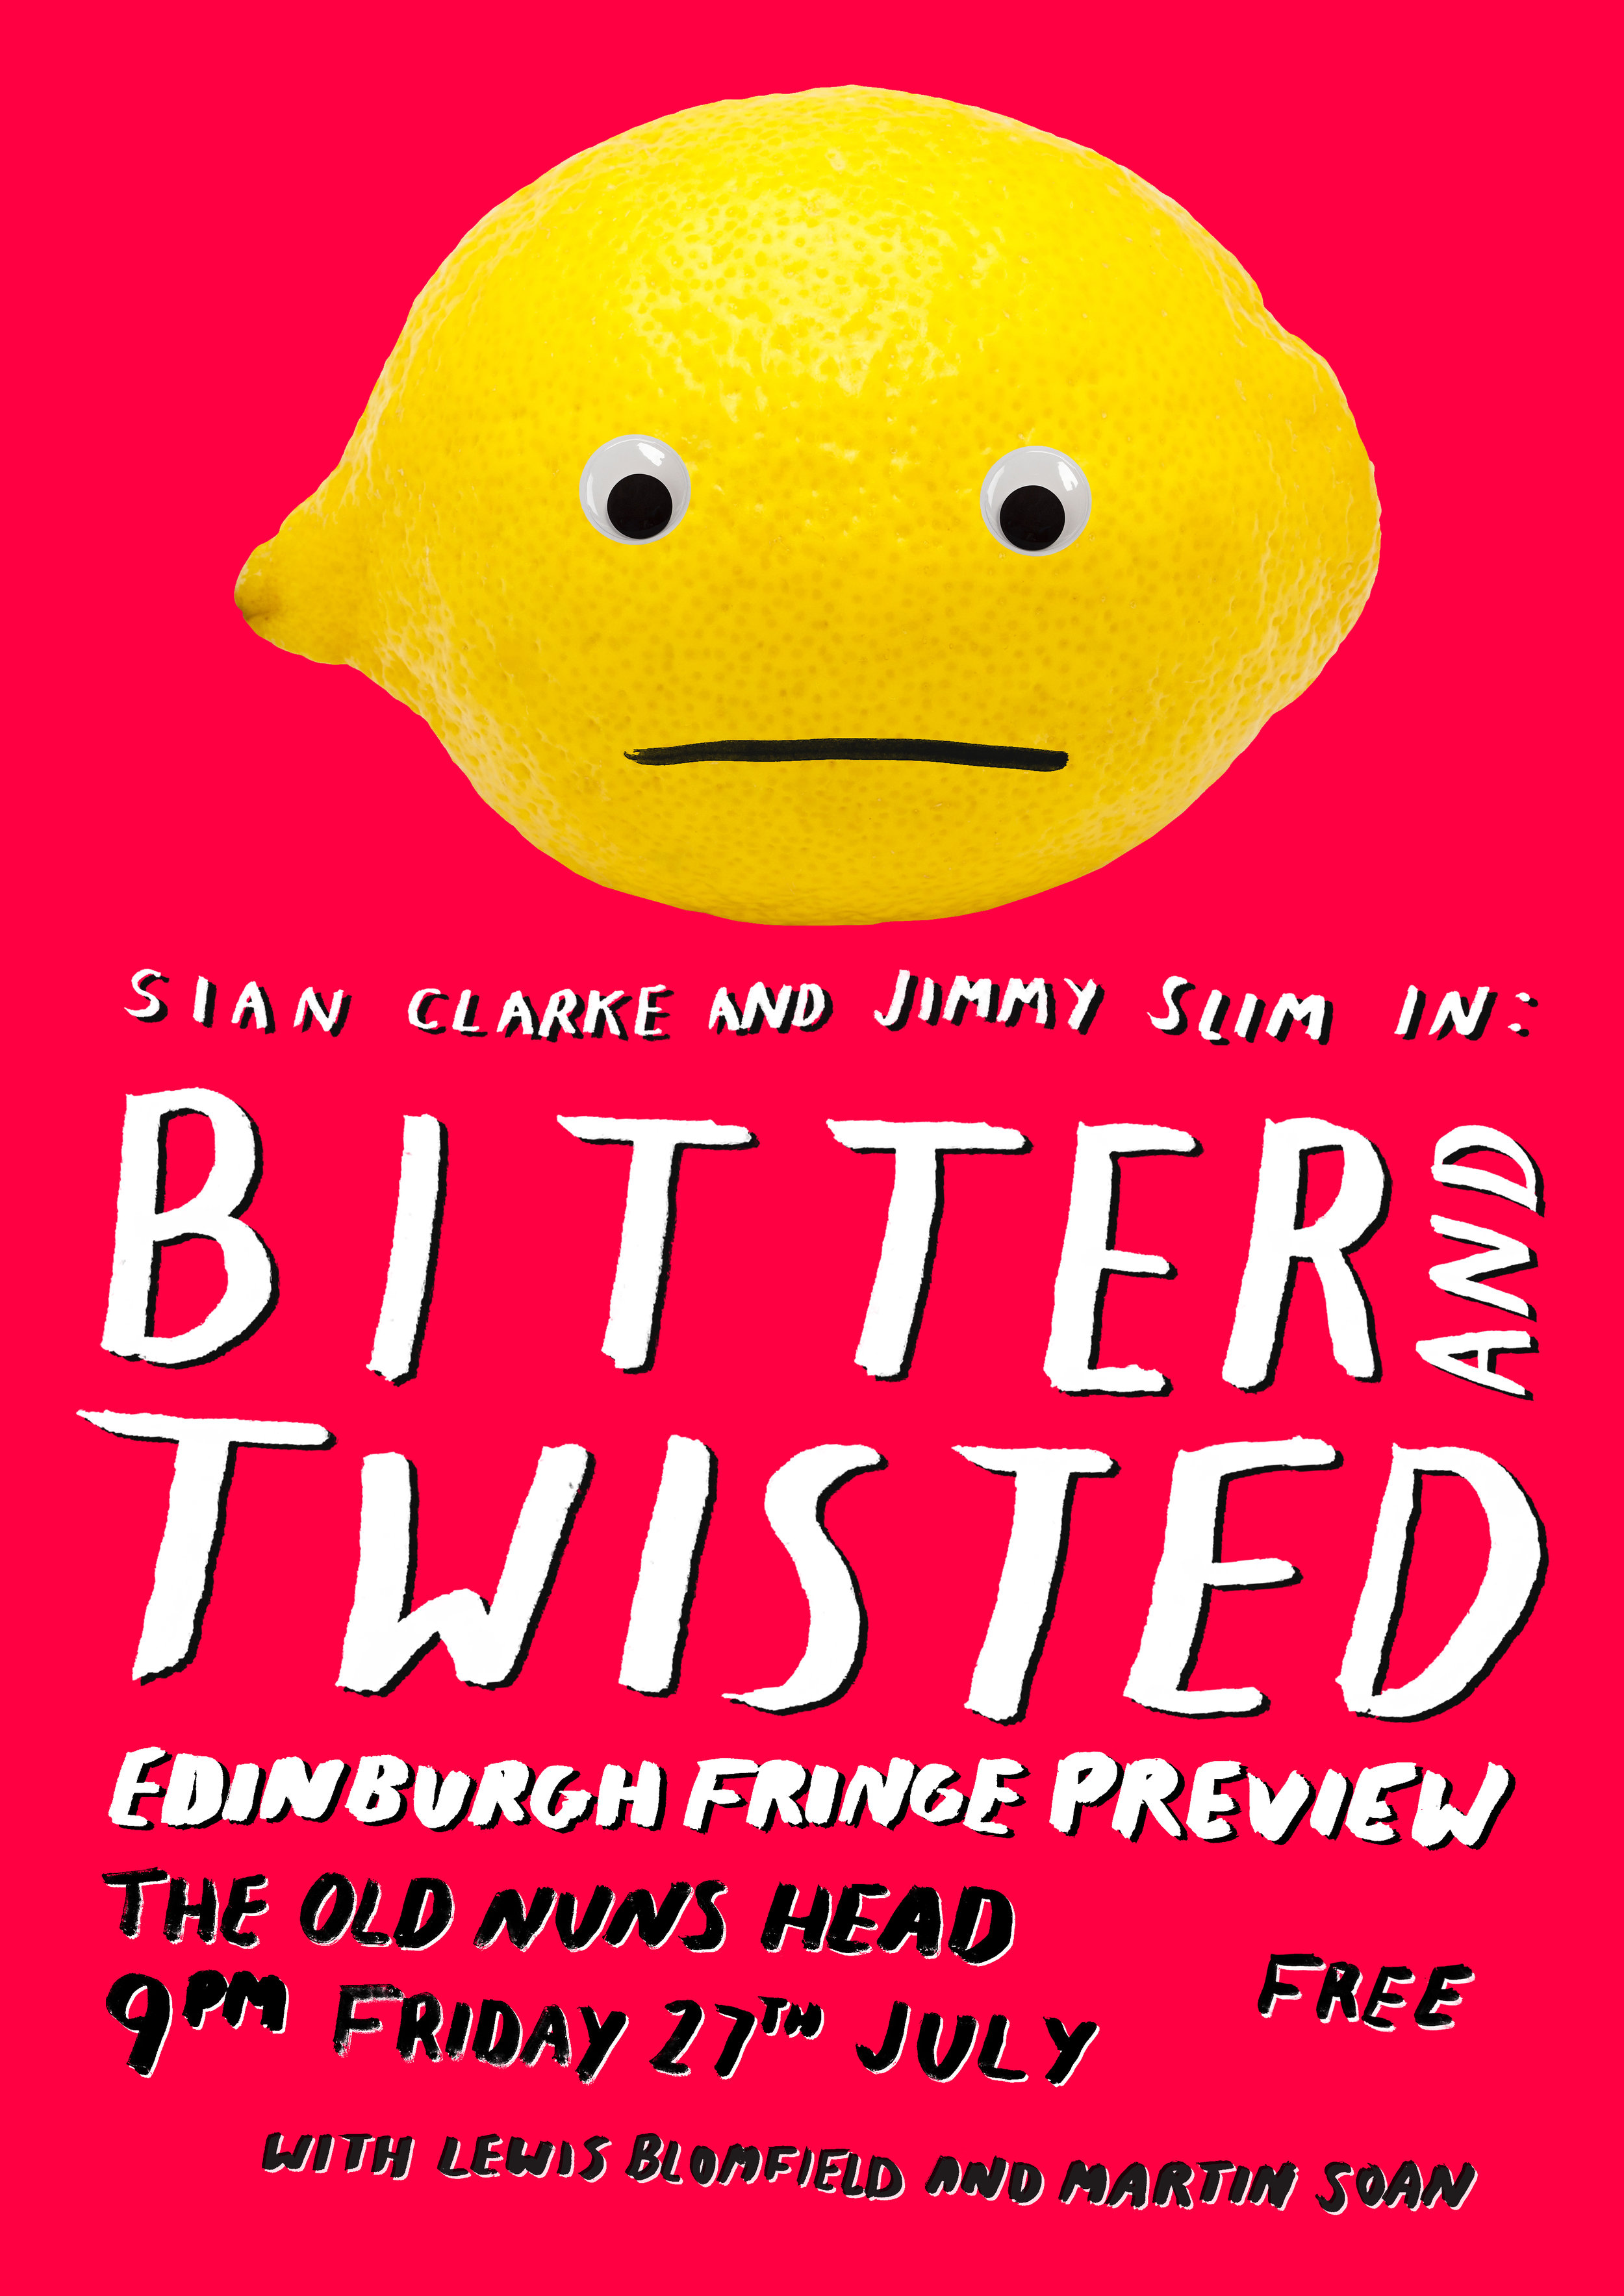 Bitter and Twisted preview poster digital.jpg